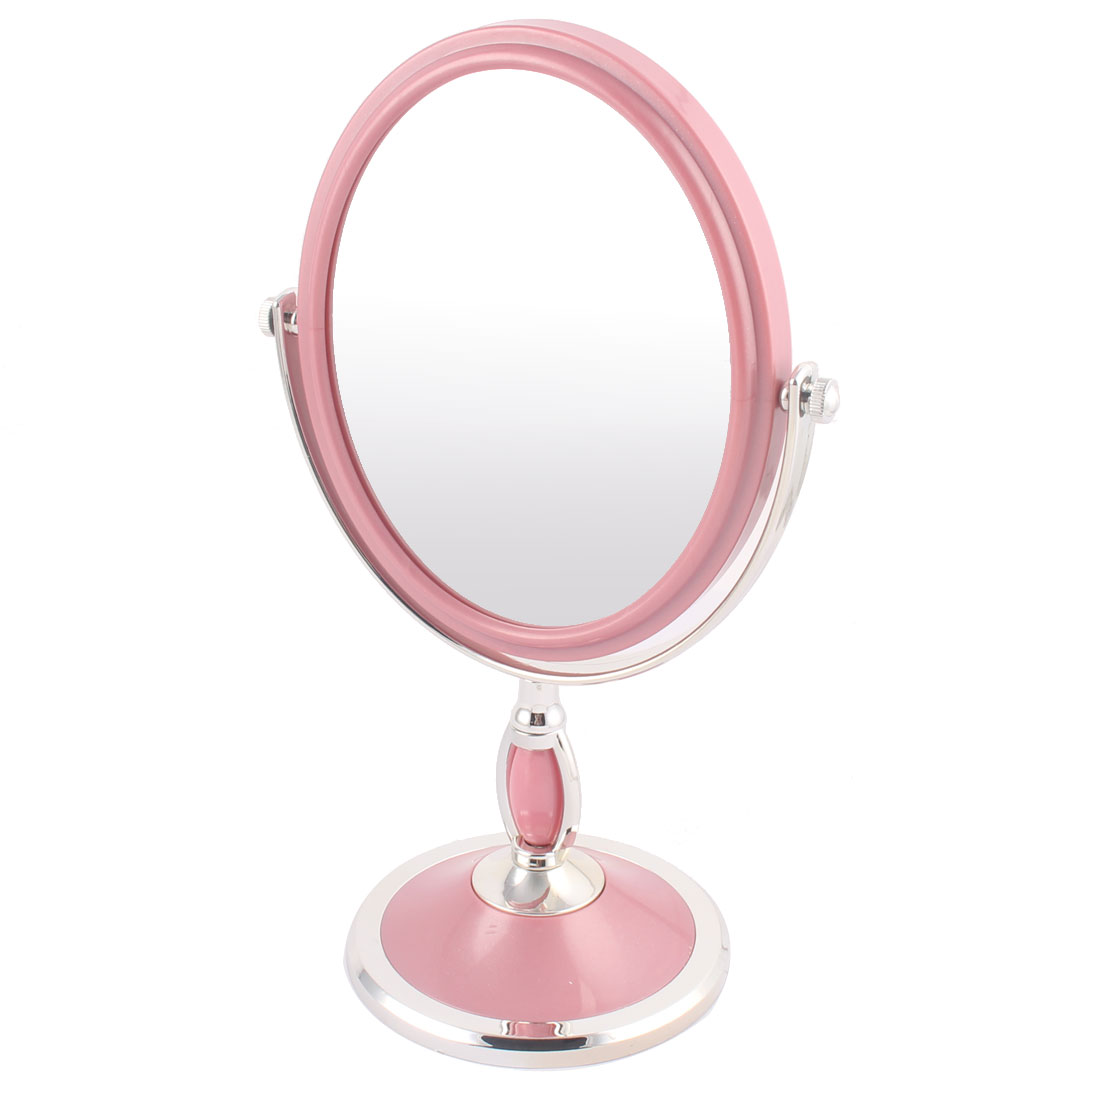 Household Toiletry Shop Plastic Oval Desktop Self Stand Two Side Makeup Compact Mirror Pink